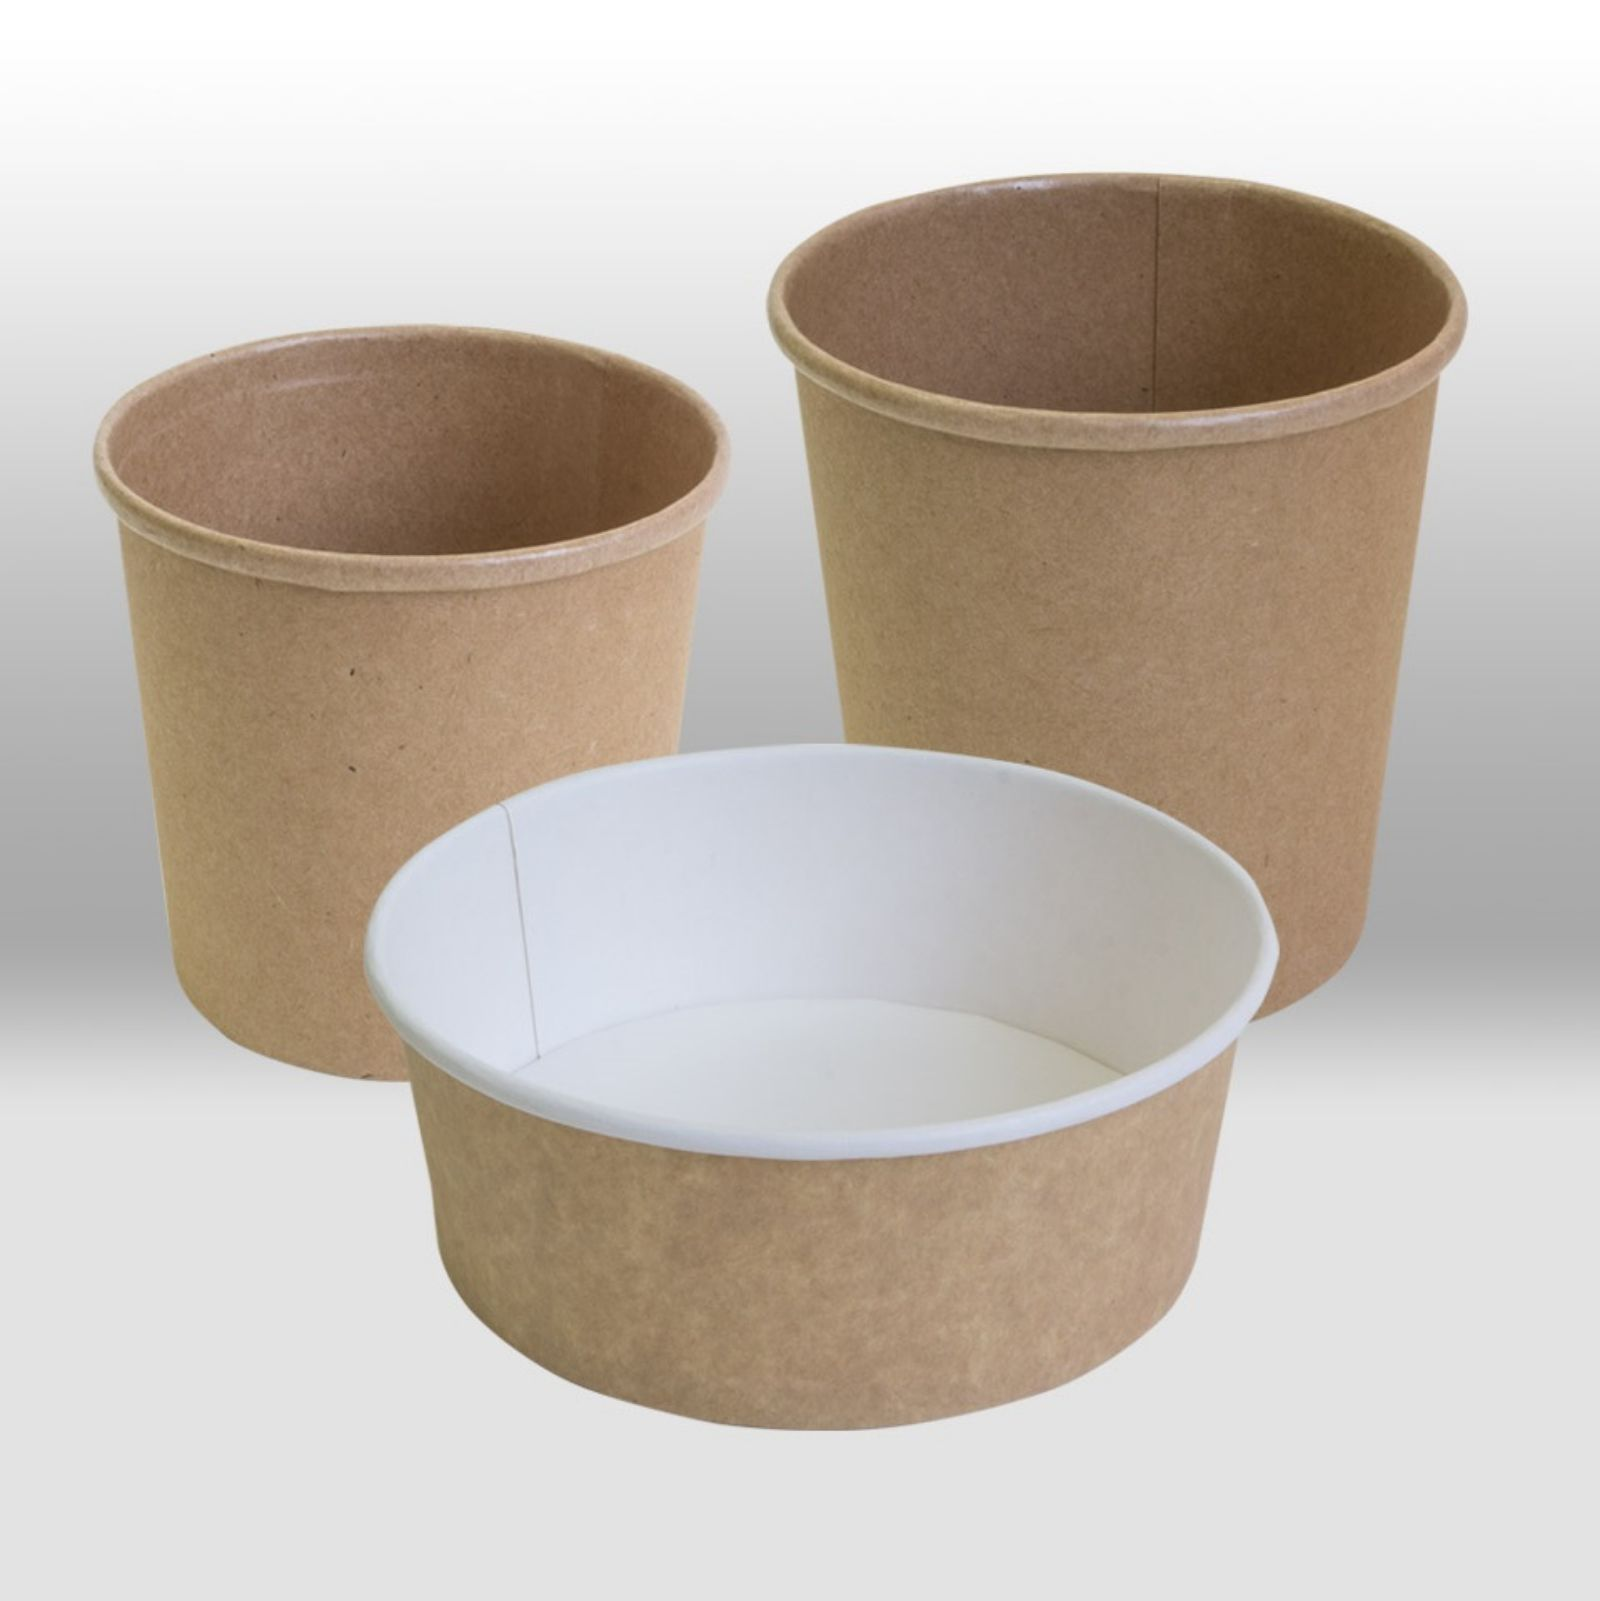 Paper containers by Papperskopp